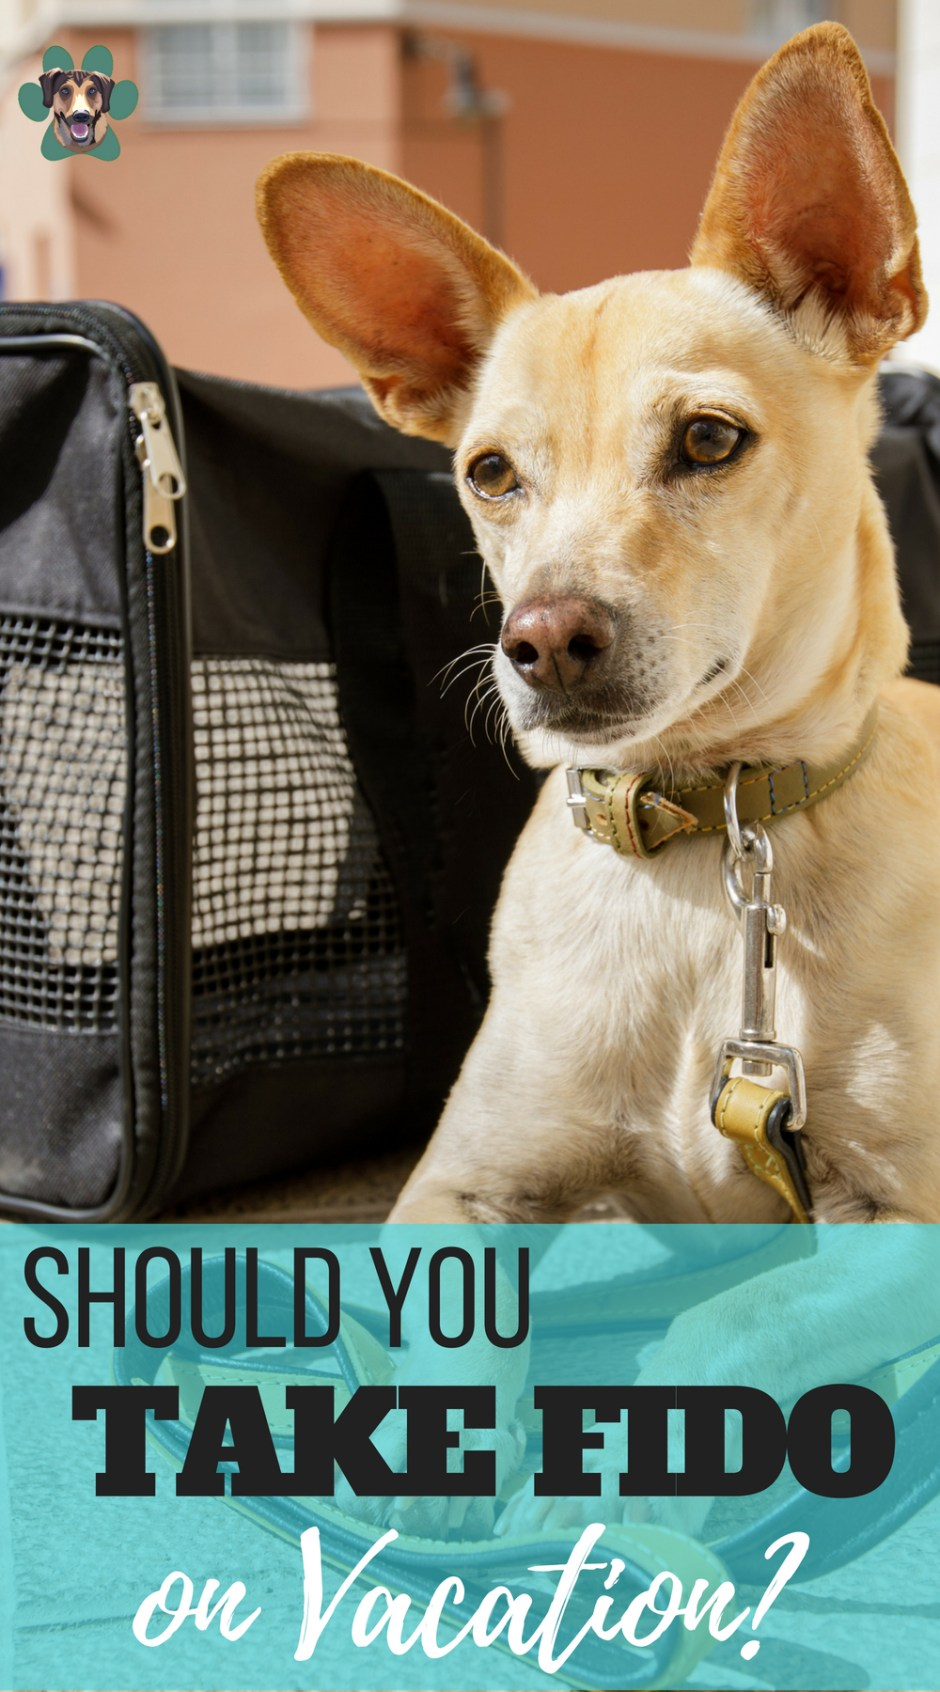 Summer is fast approaching. Are you planning some awesome Summer getaways? Do you plan on taking your pupper? There is a lot to consider when bringing your dog along for the ride. Before you start packing, here are some answers to the question,